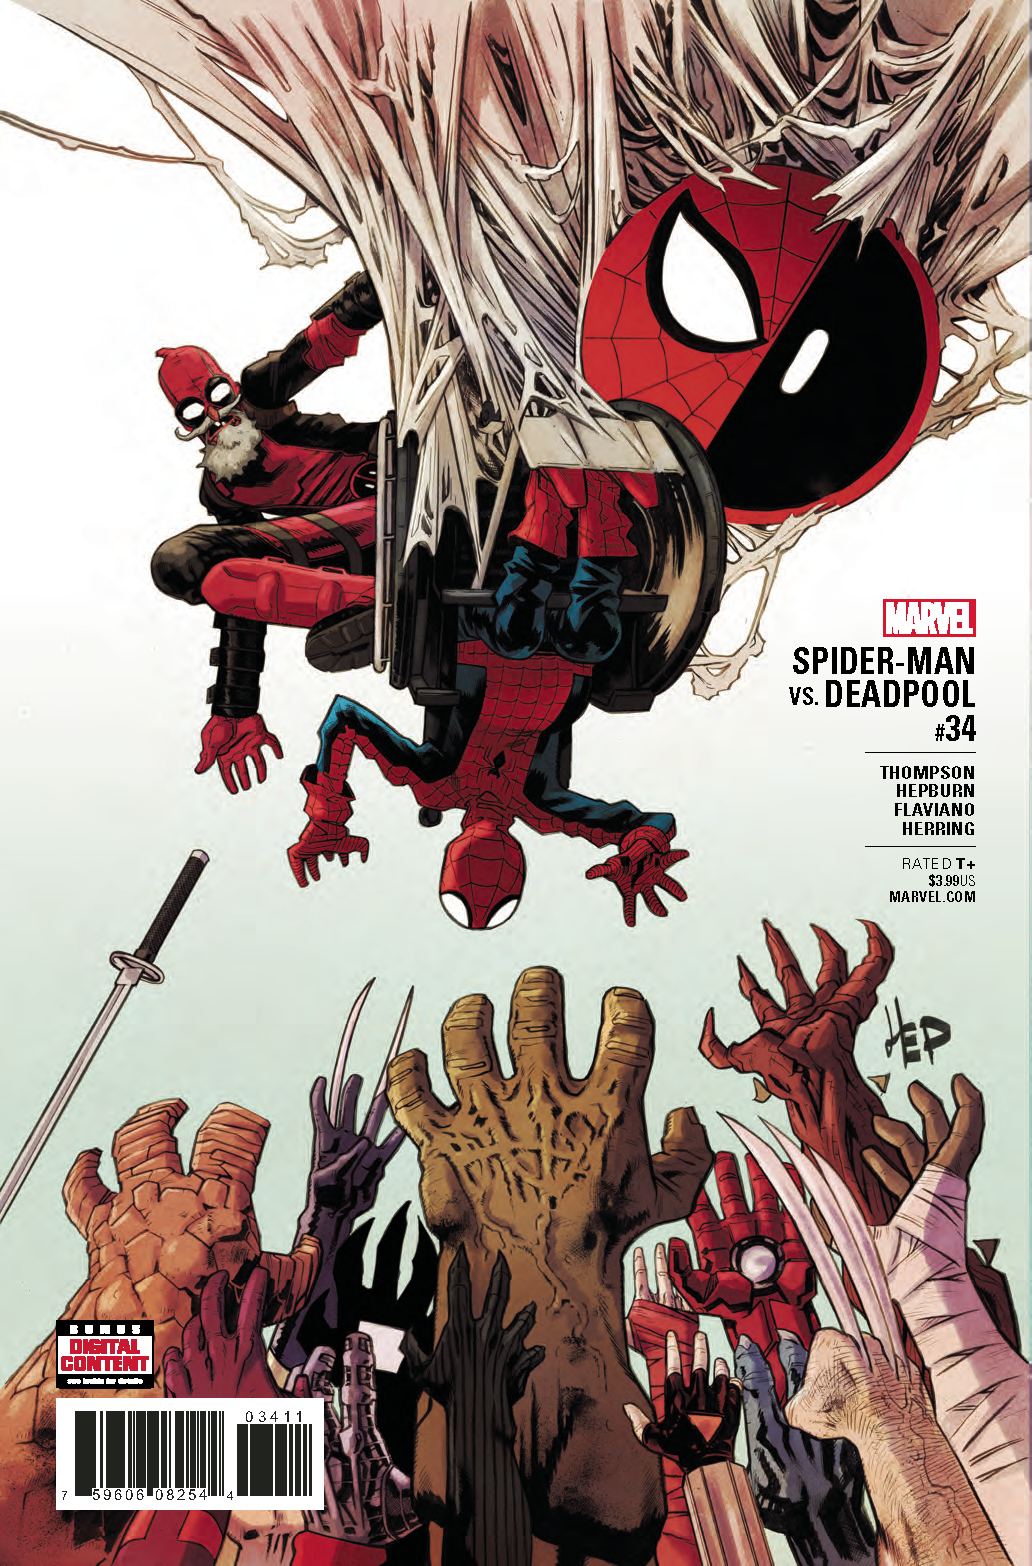 SPIDER-MAN DEADPOOL #34